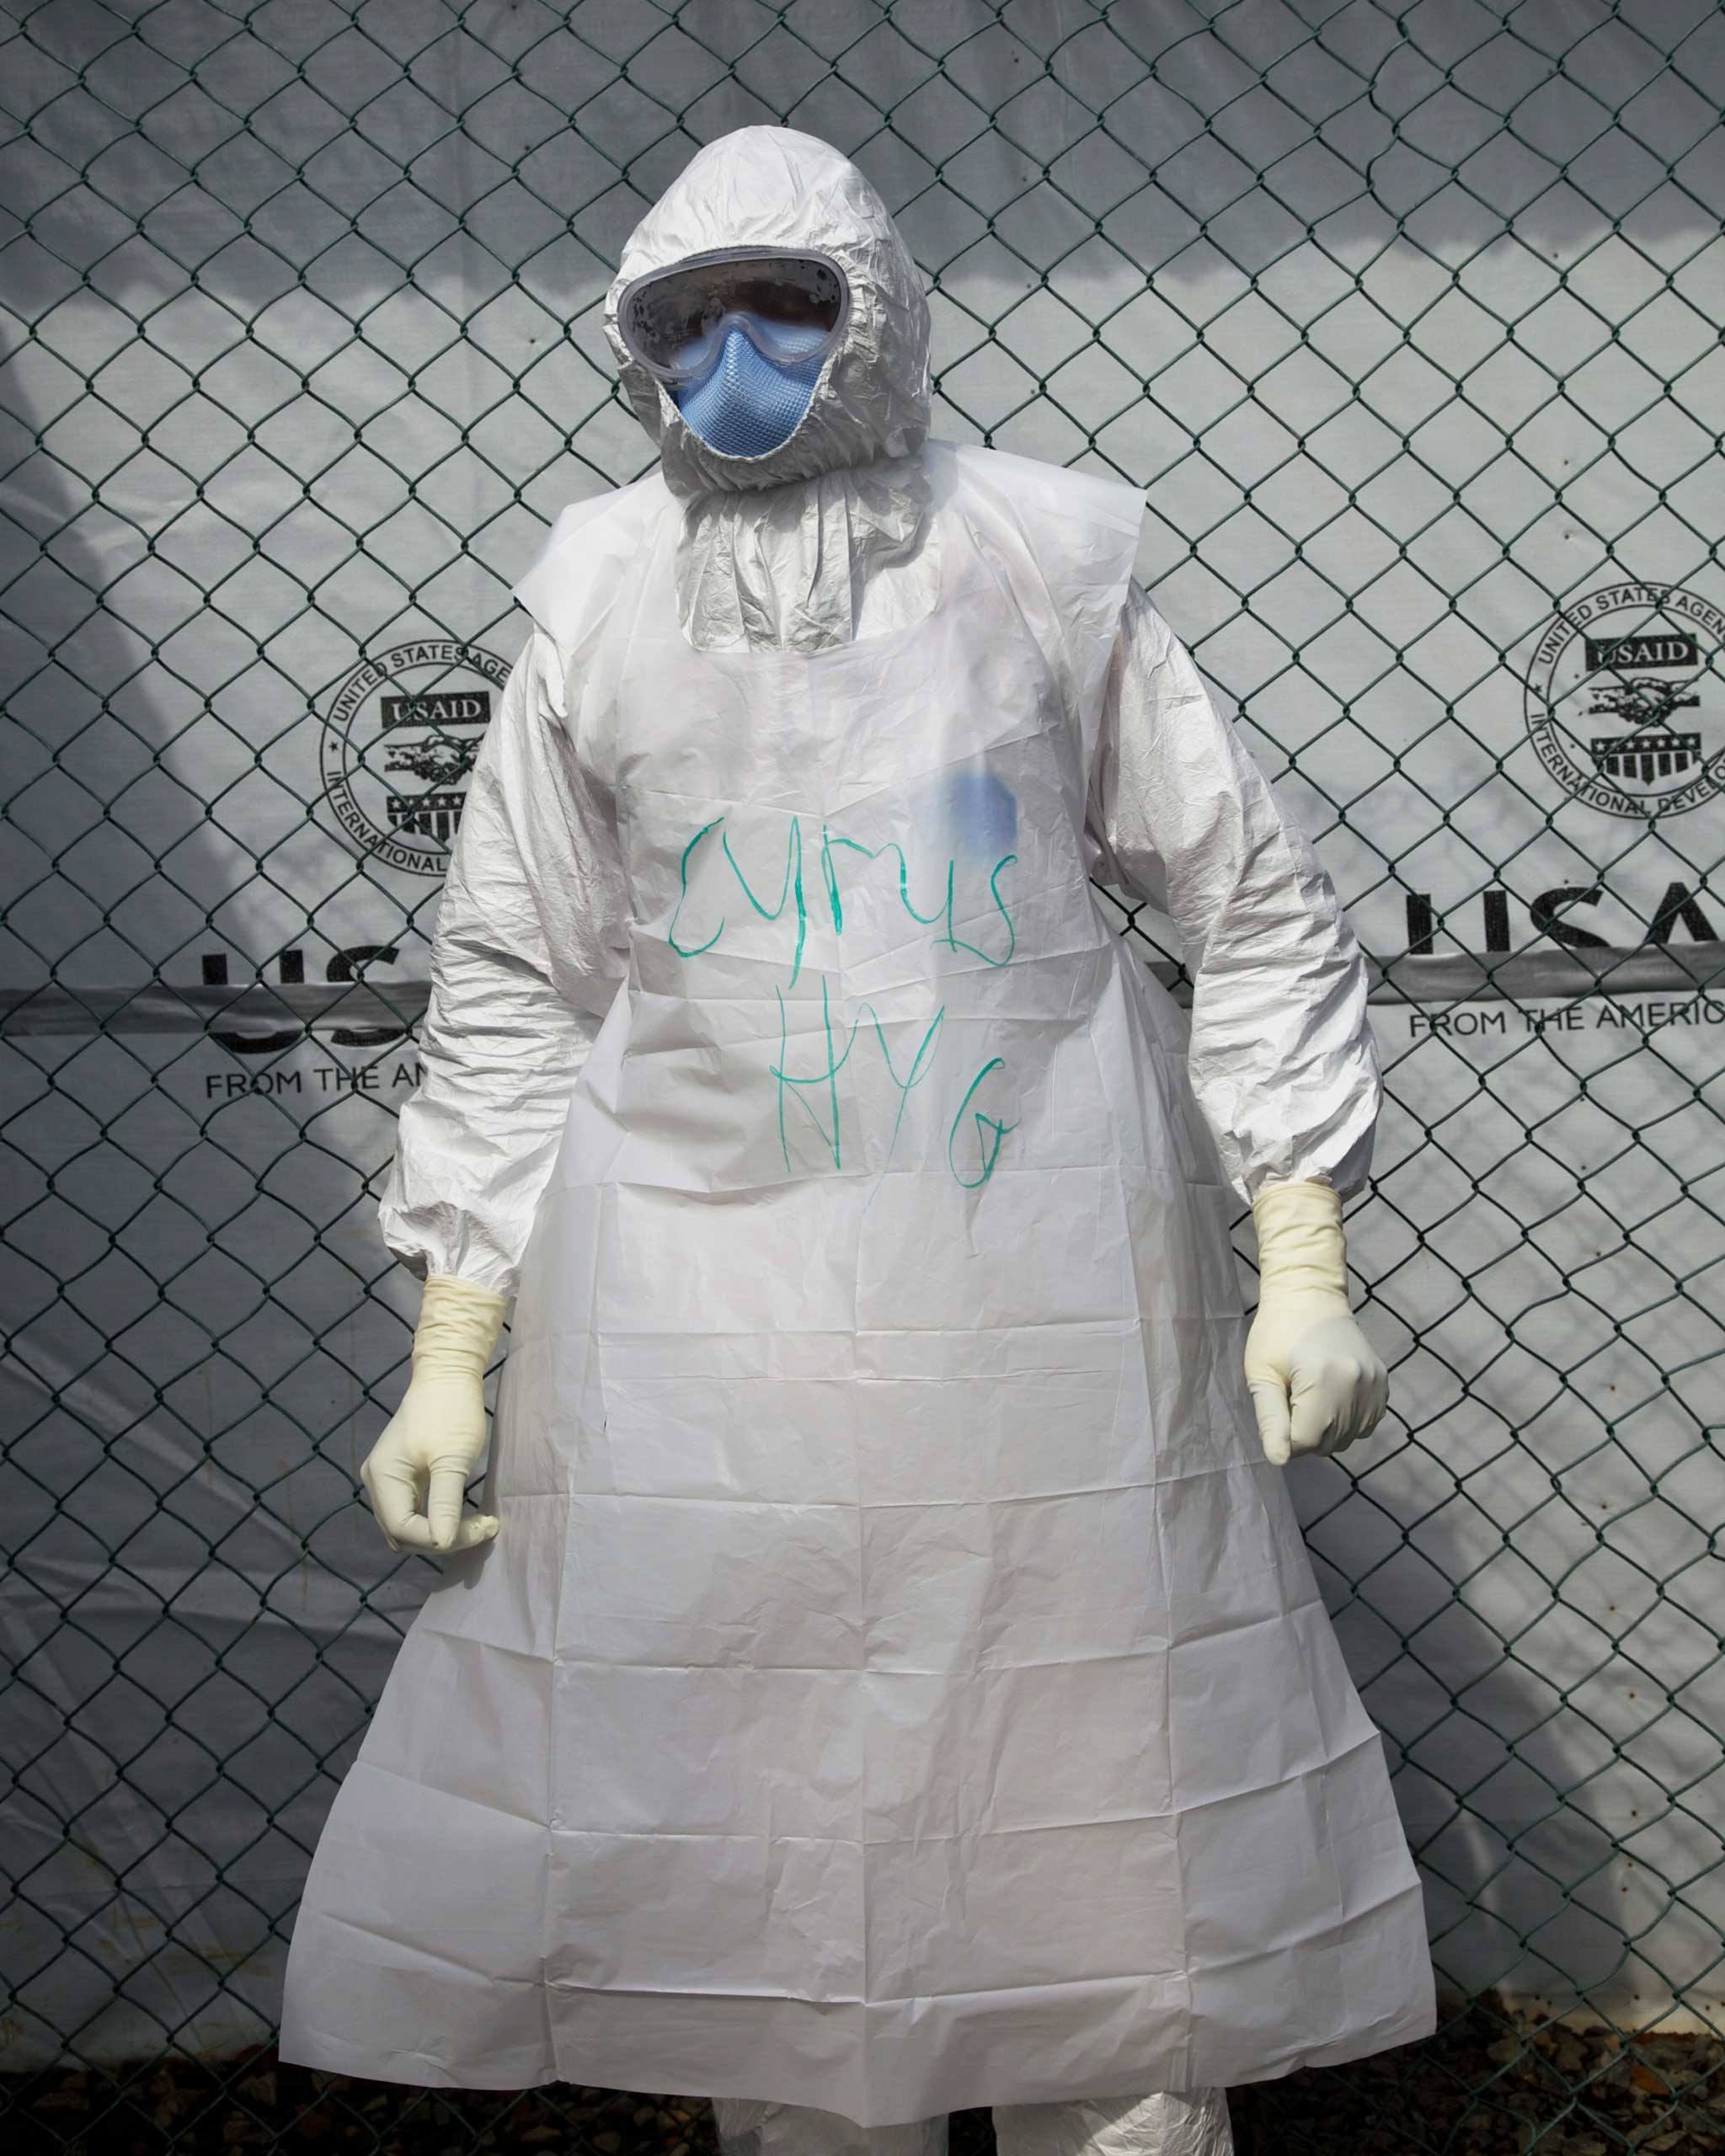 A Nurse and Hygienist trainee dressed in PPE at the Liberian Ministry of Health's Ebola Treatment Unit at the former Ministry of Defense compound, in Monrovia, Liberia. Nov. 27, 2014